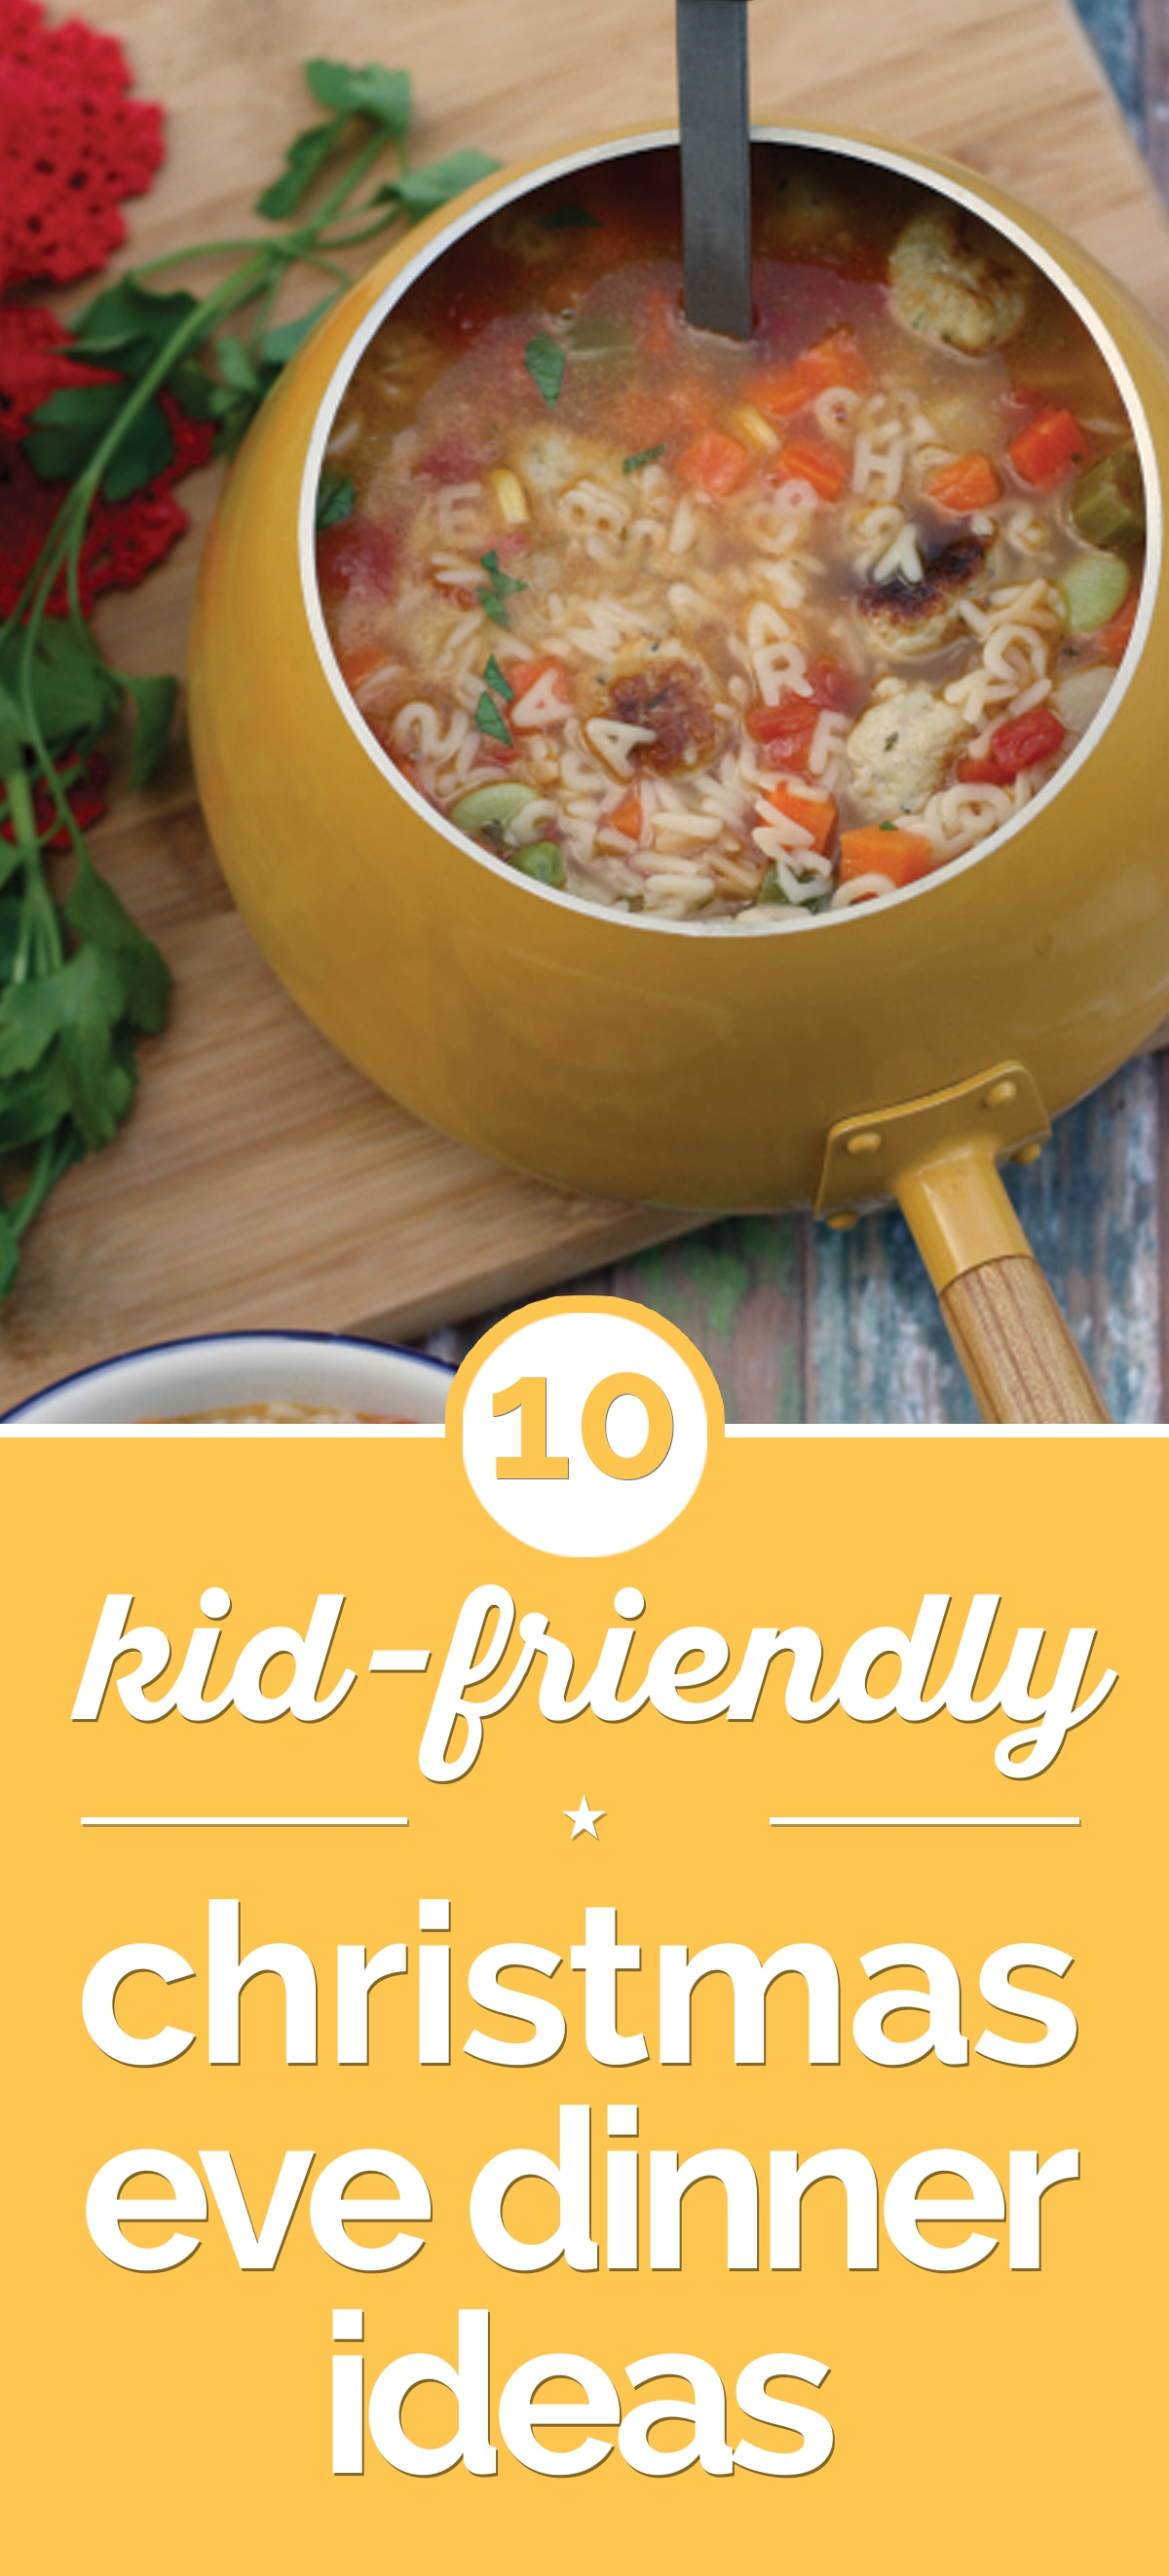 10 Kid-Friendly Christmas Eve Dinner Ideas | thegoodstuff